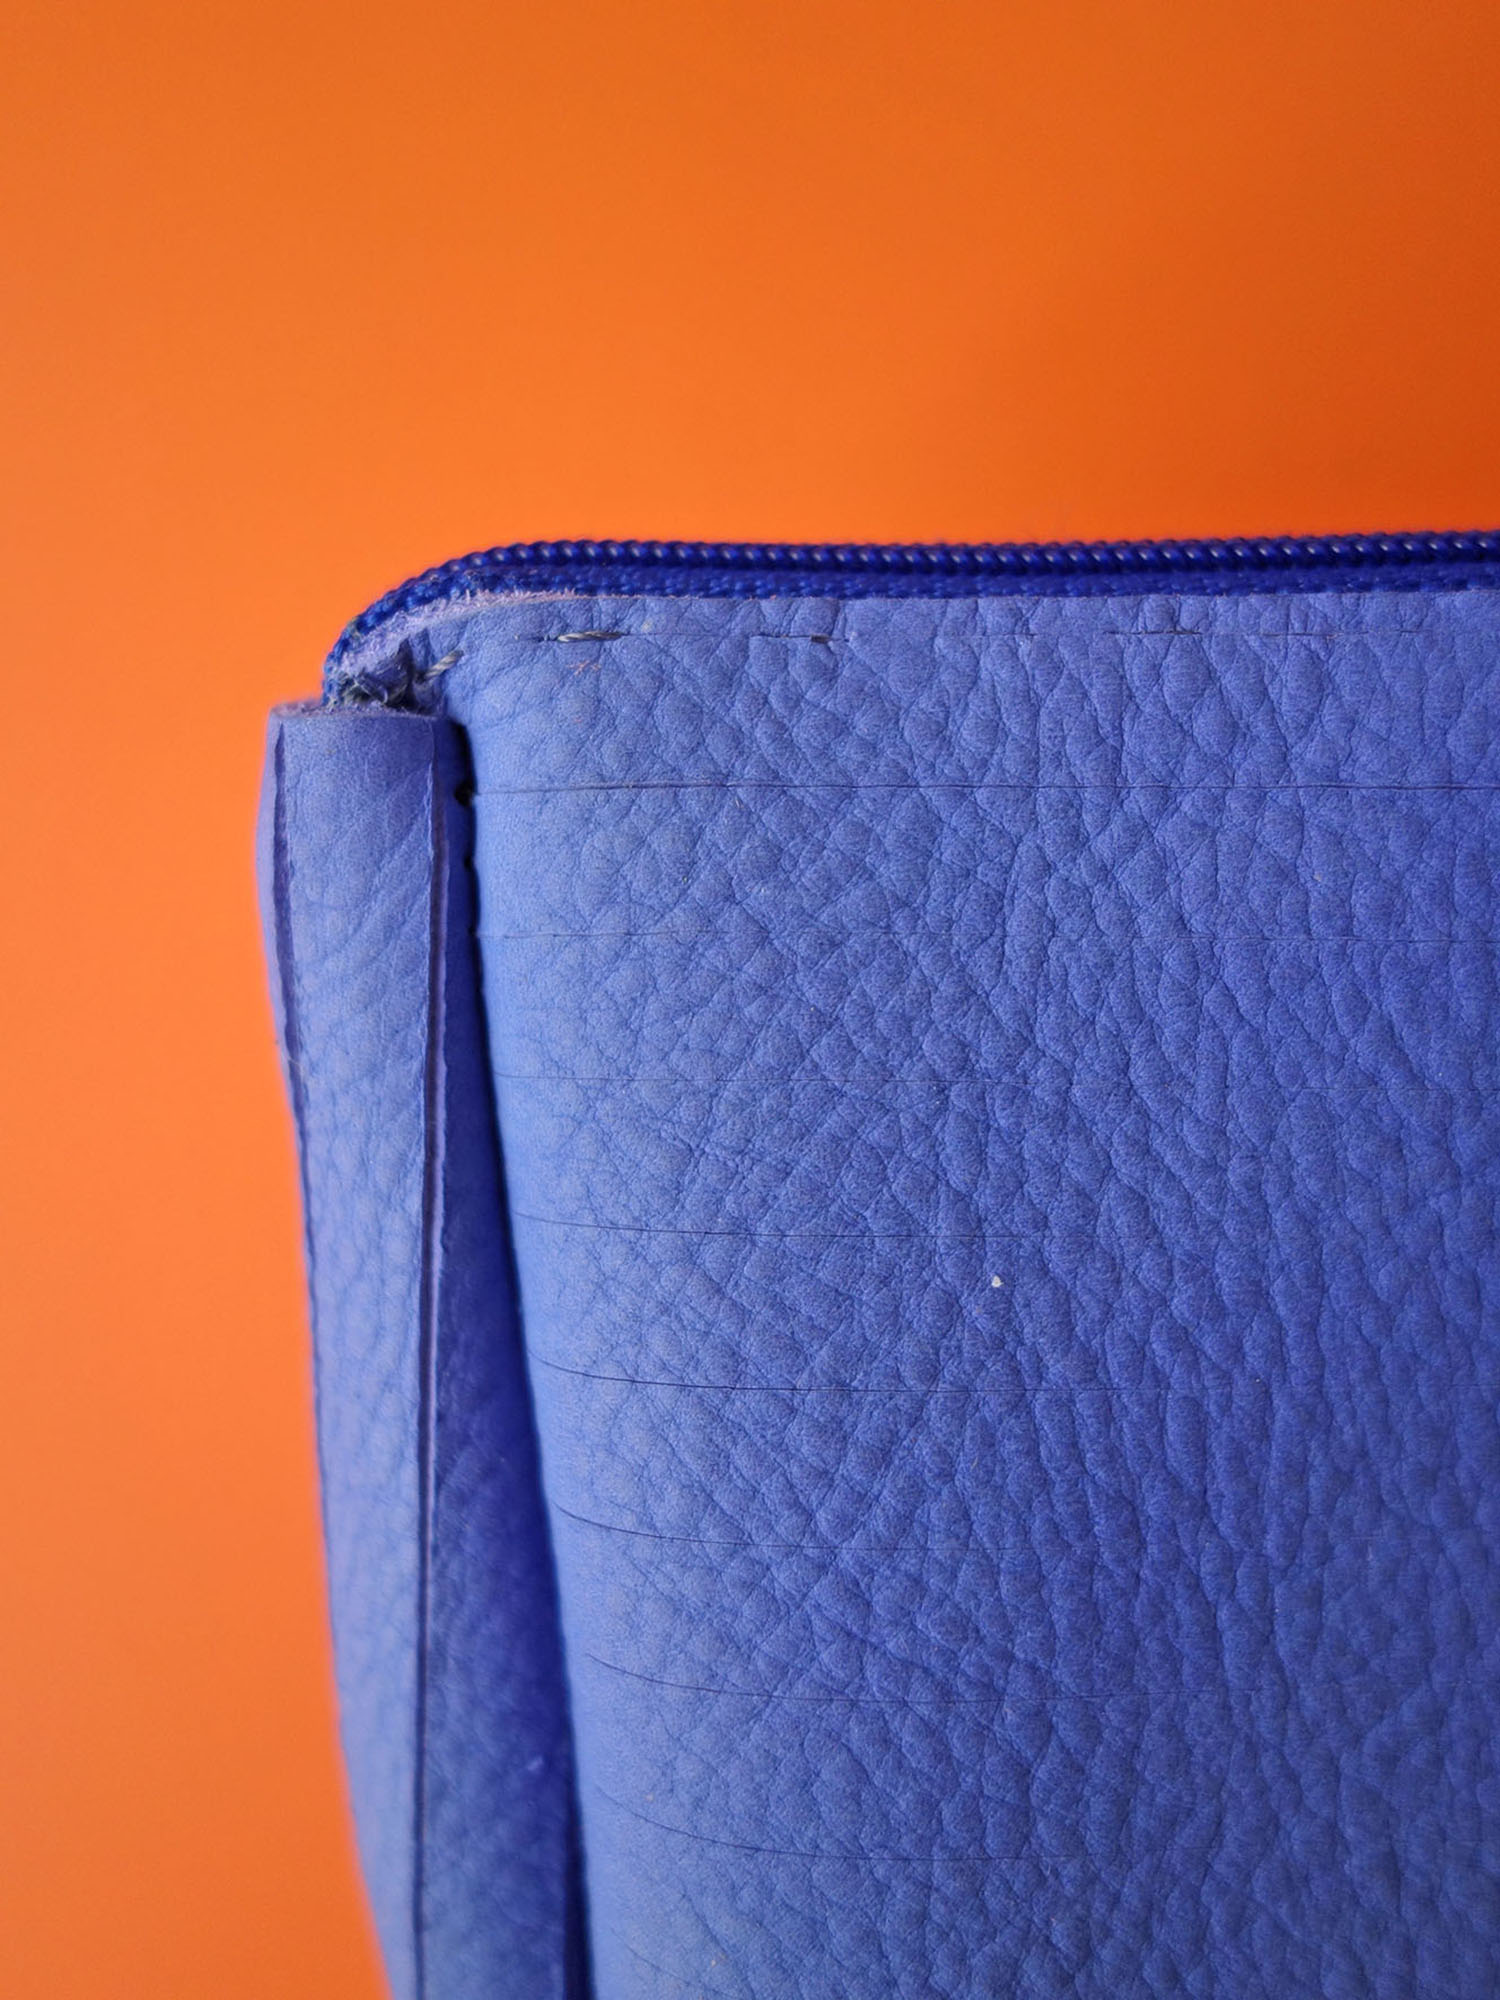 Liodebruin_Leather_Pouch_01.jpg